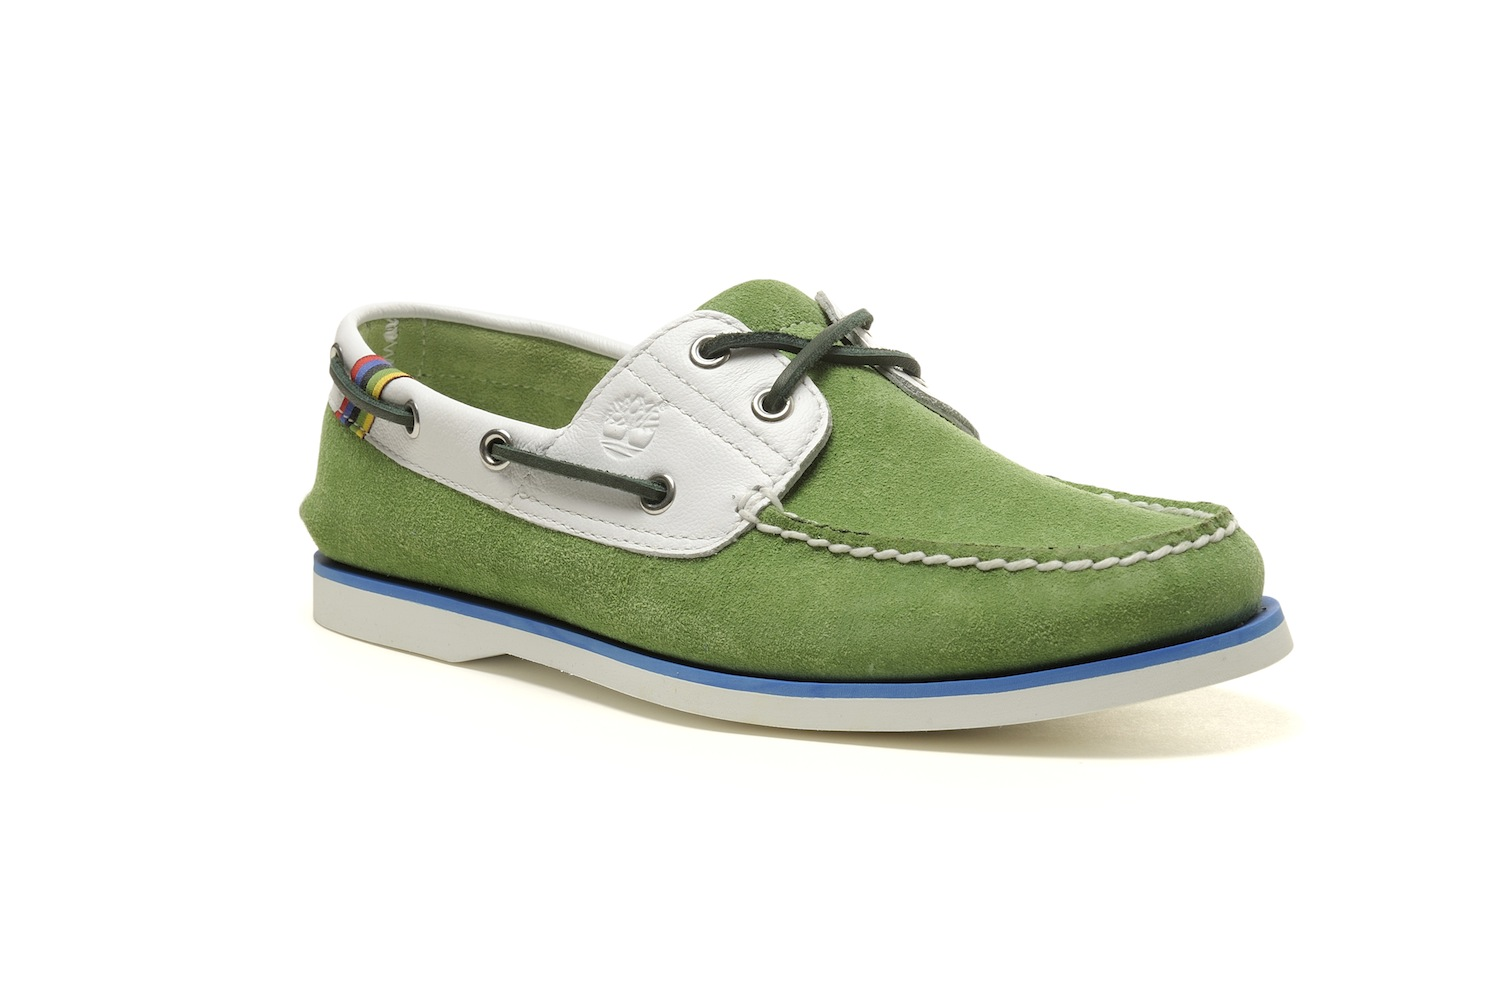 Men's Timberland Classic 2-Eye Boat Shoe